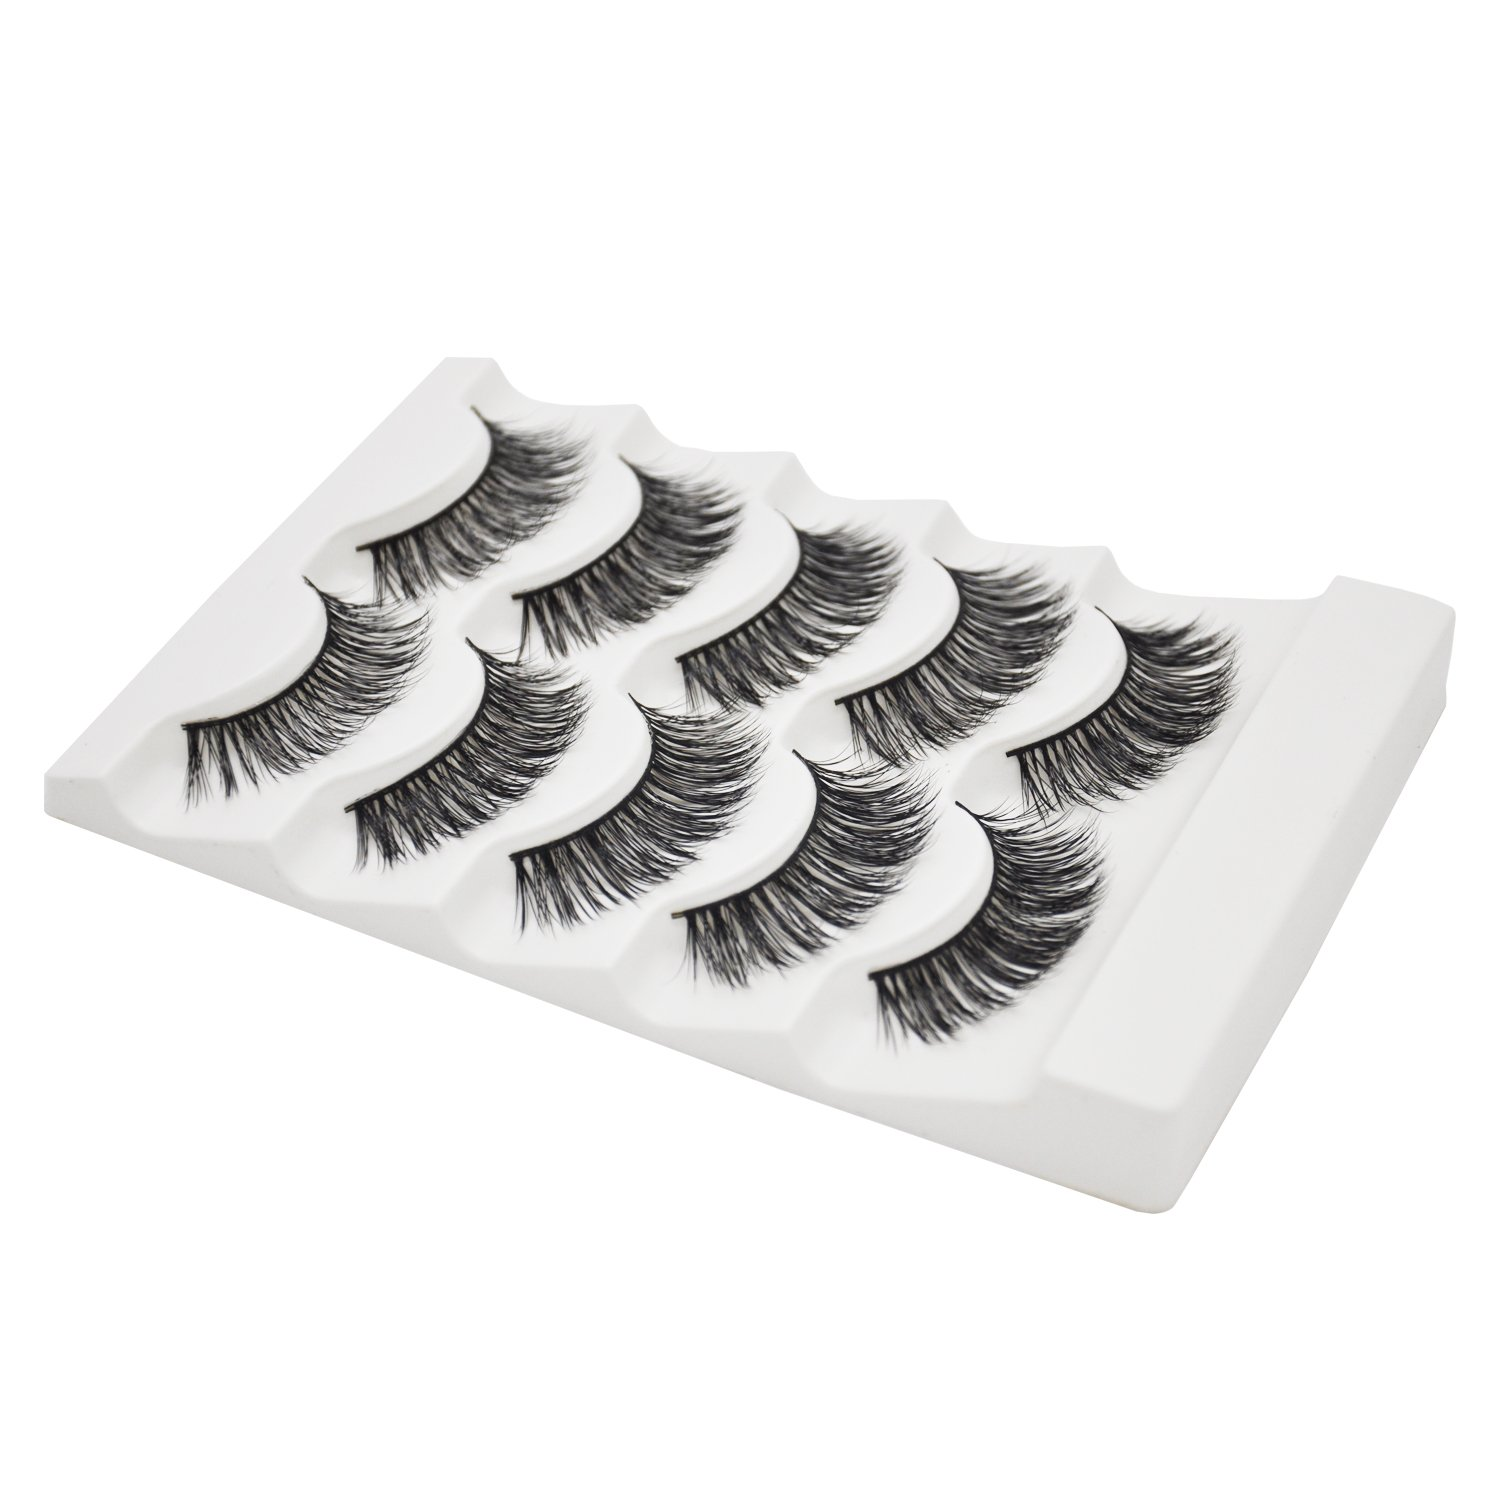 3D Fur Mink Eyelashes Natural Long Make up Messy Flirty Fake Lashes Curly Lightweight False Eyelashes for Women 5 Pairs/Box